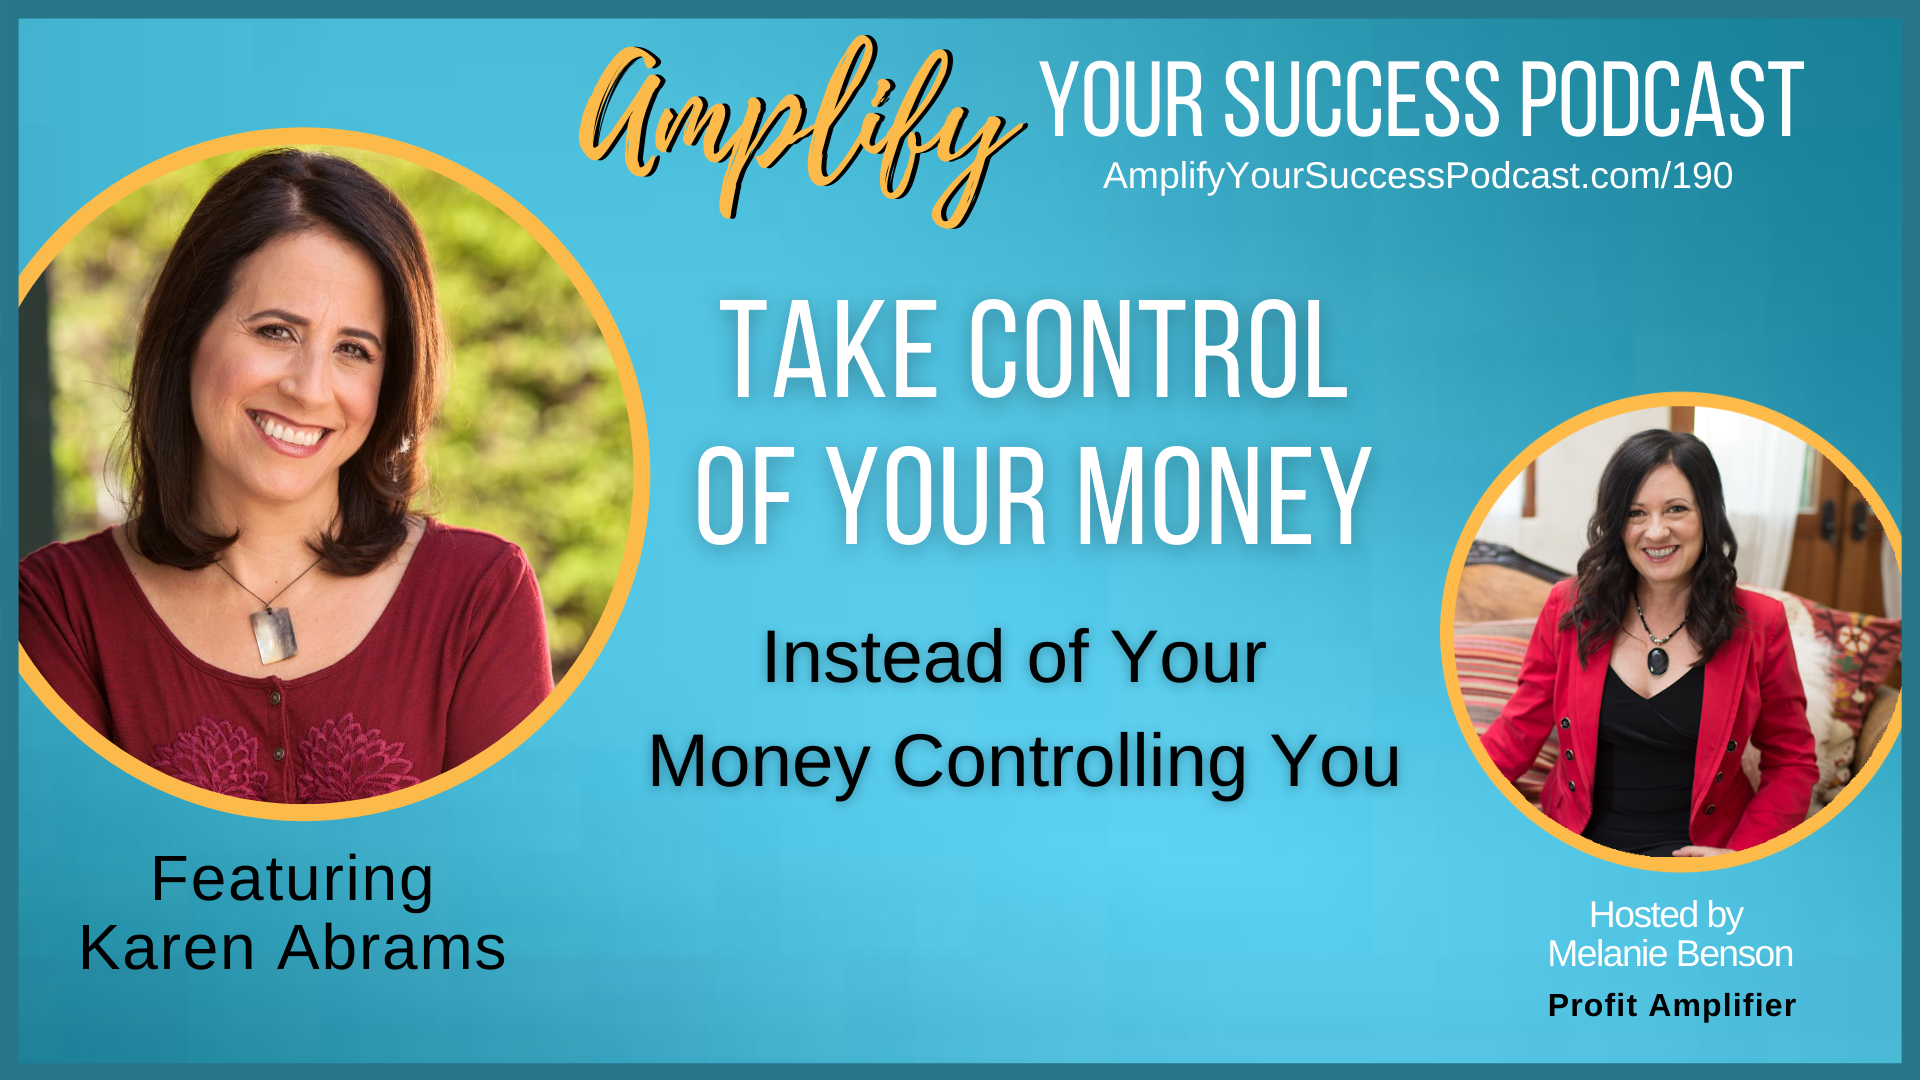 Take Control of Your Money Instead of Your Money Controlling You with Karen Abrams on Amplify Your Success Podcast Episode 190 with Melanie Benson